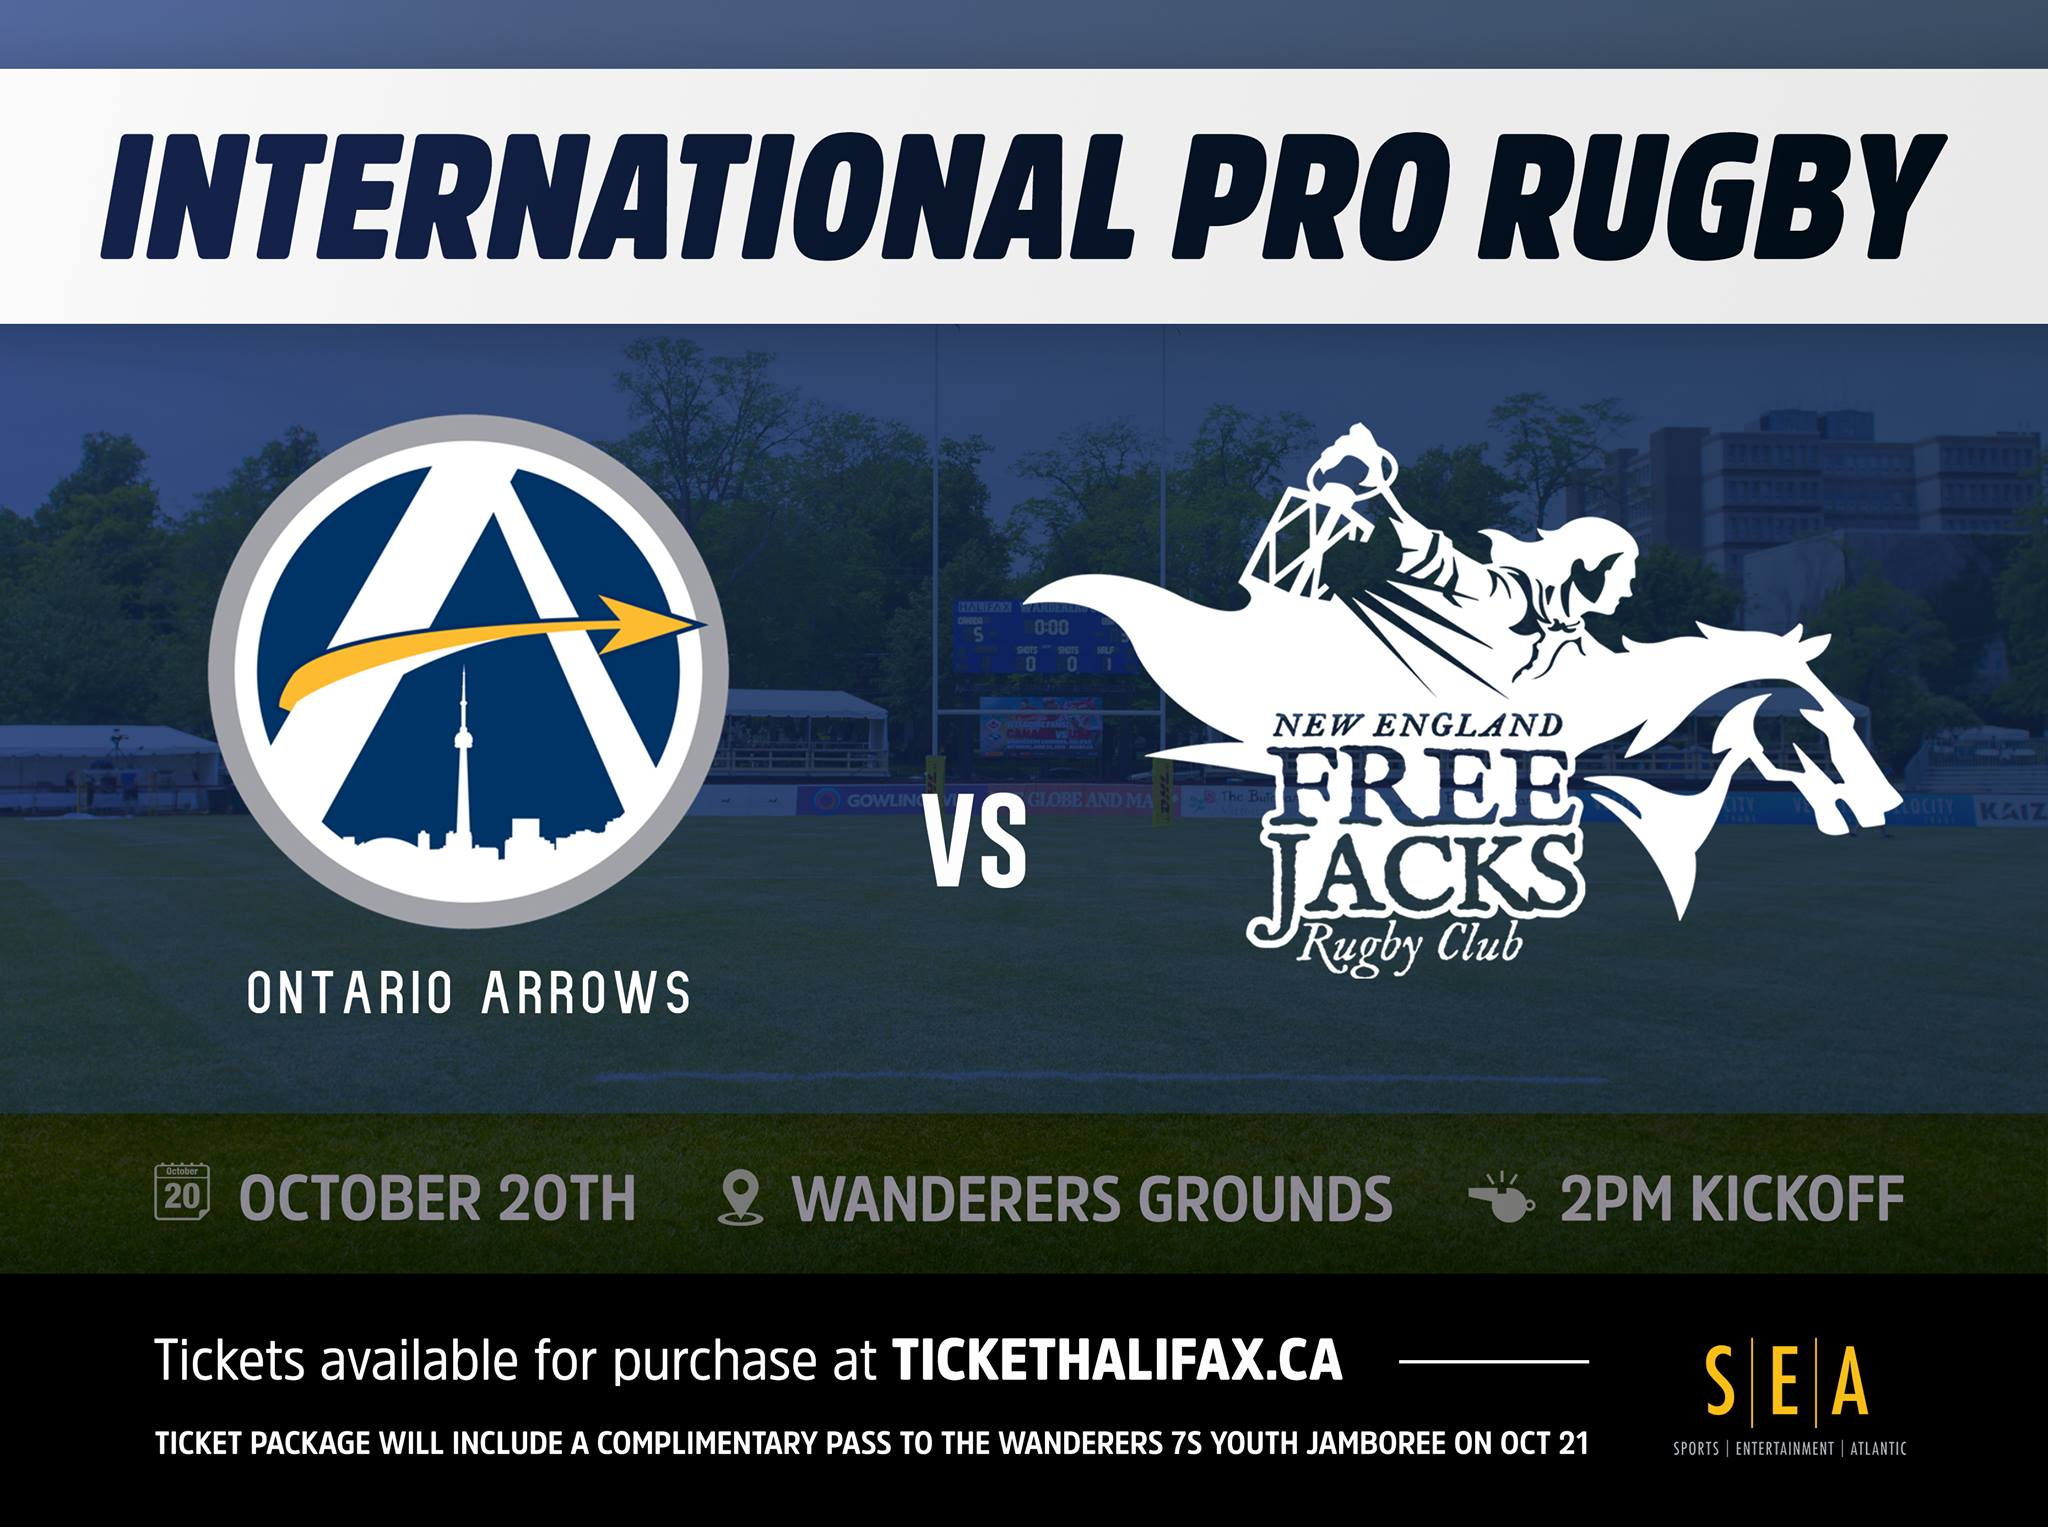 RELEASE: SEA to Host Professional Rugby at Wanderers Grounds (Oct. 20, 2018)